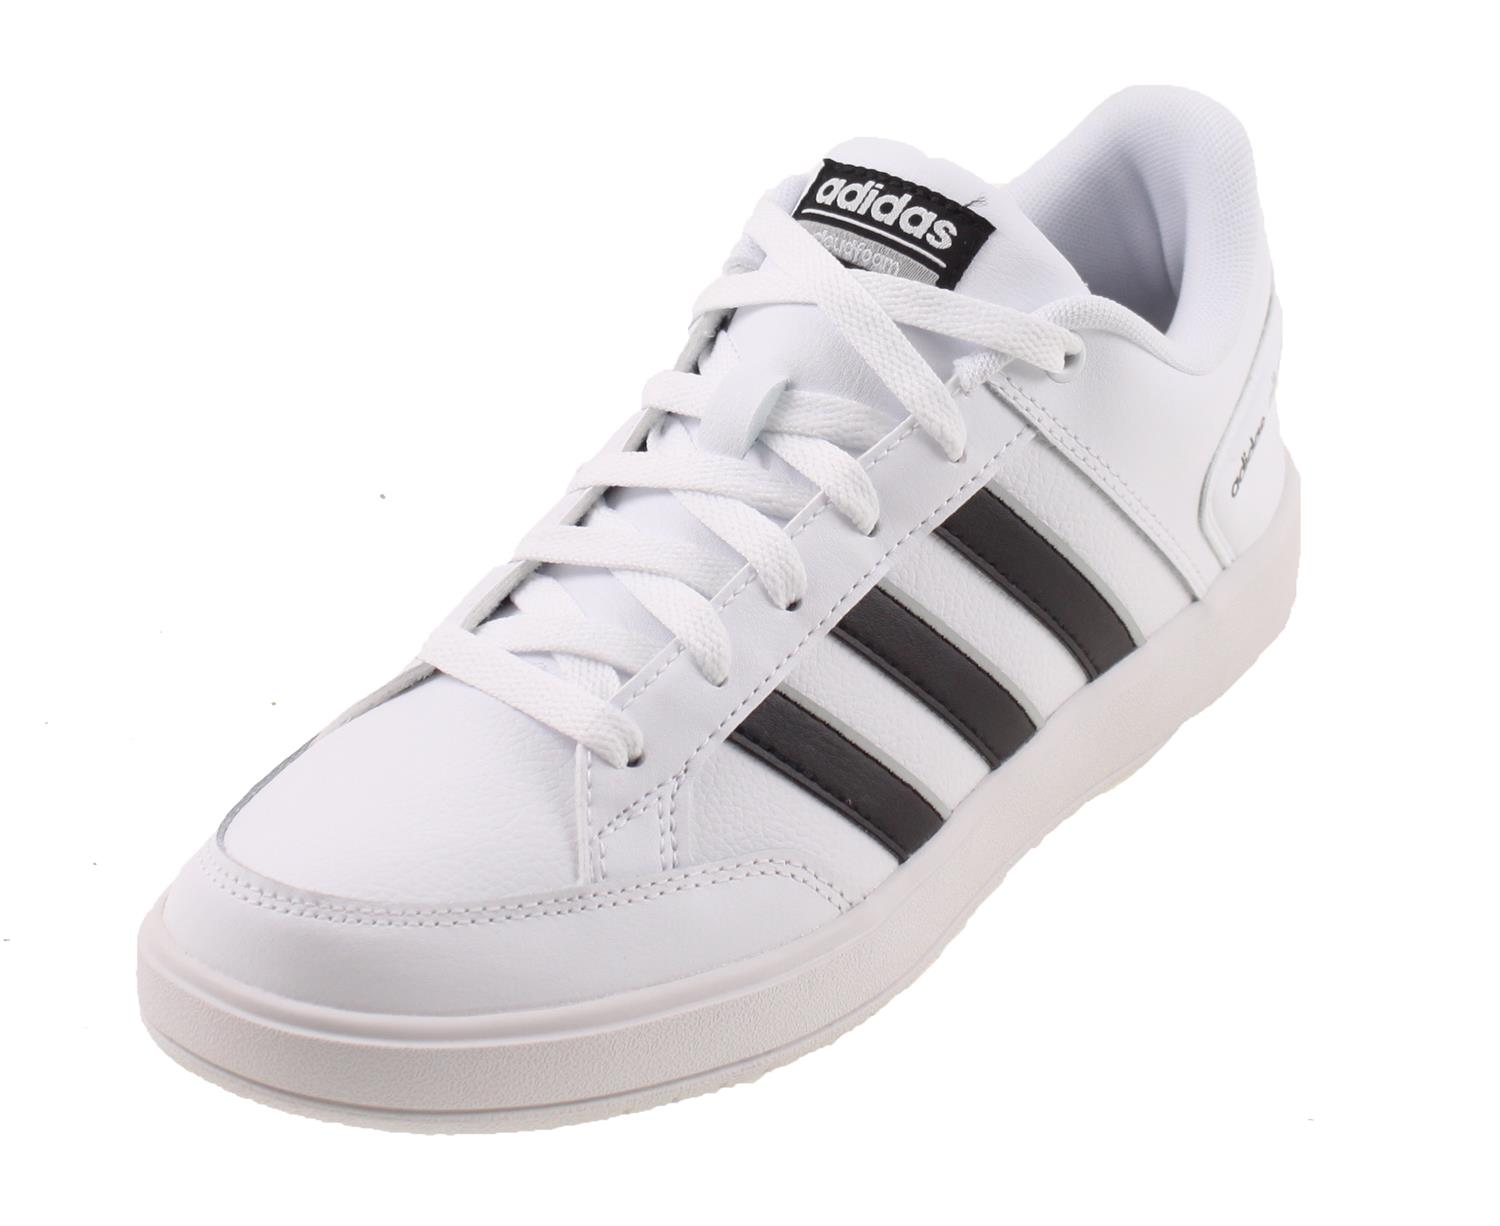 new concept 6ded7 7fac0 Adidas Cloudfoam All Court